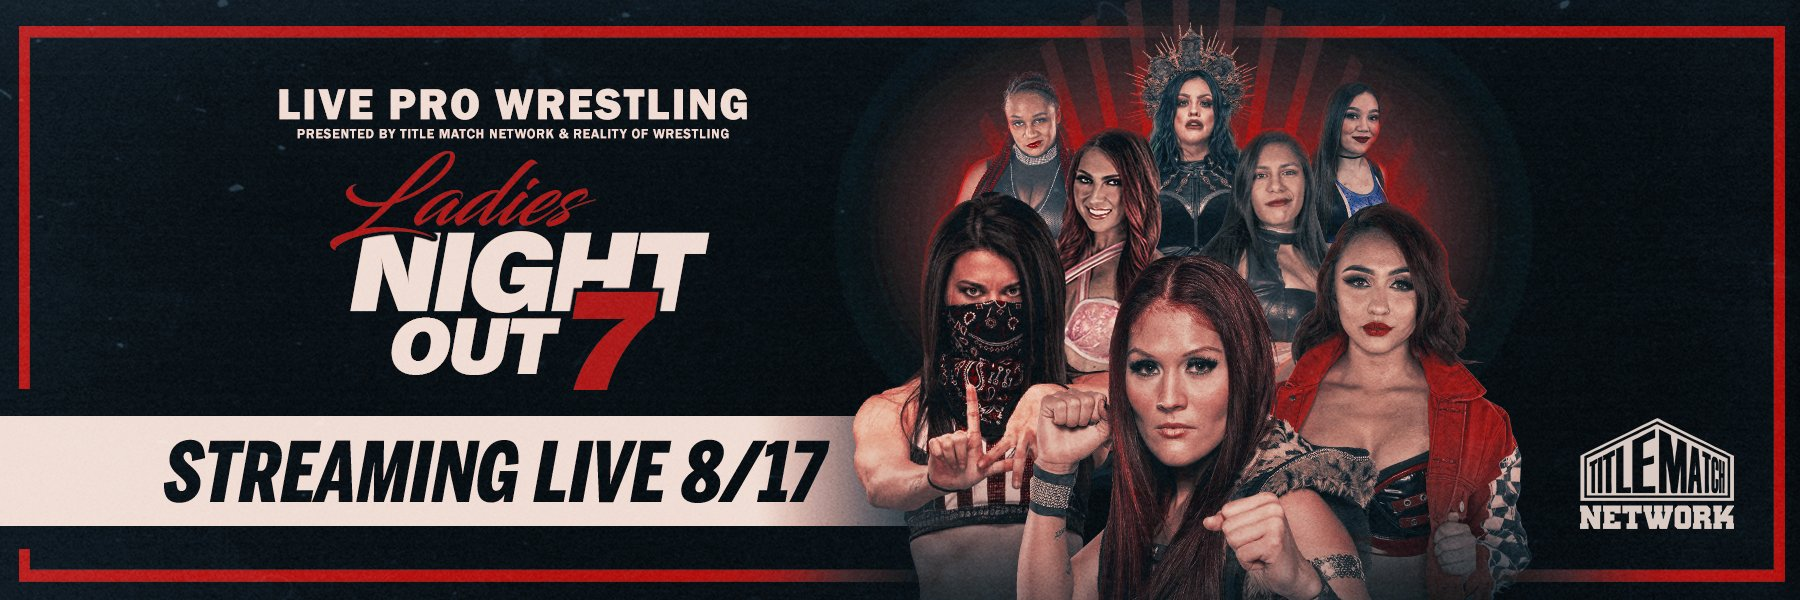 Ladies Night Out 7 LIVE TONIGHT 8/17 - Renee Michelle, Ivelisse, Diamante